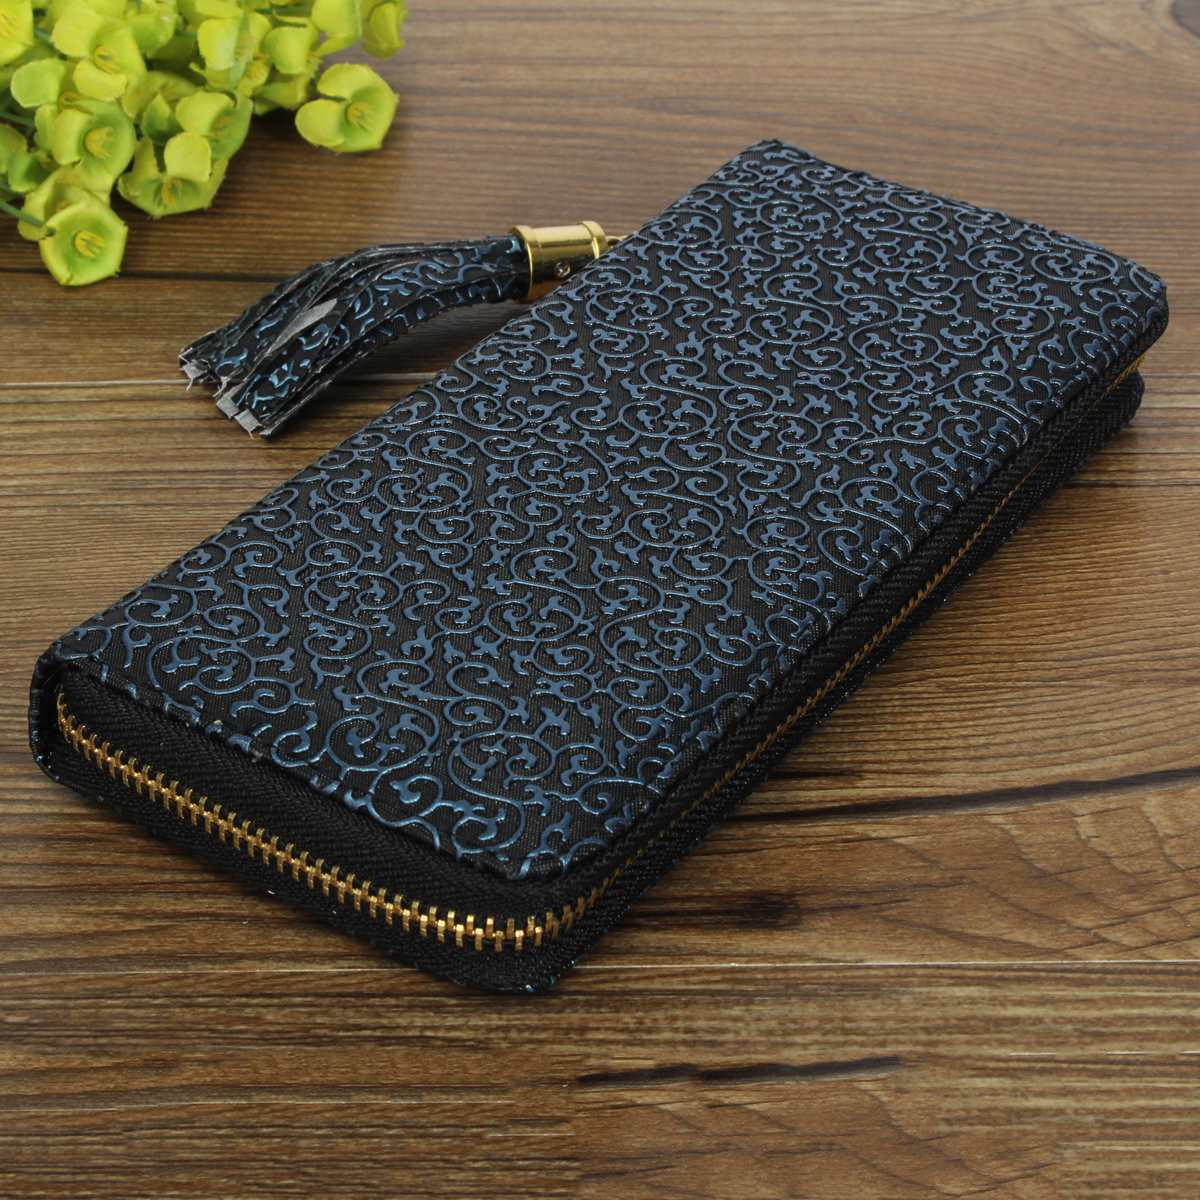 Fashion Women Long Wallets Ladies Tassels Vintage Pattern Purse Carteira Retro Notecase PU Leather Cards Coin Zipper Clutch<br><br>Aliexpress